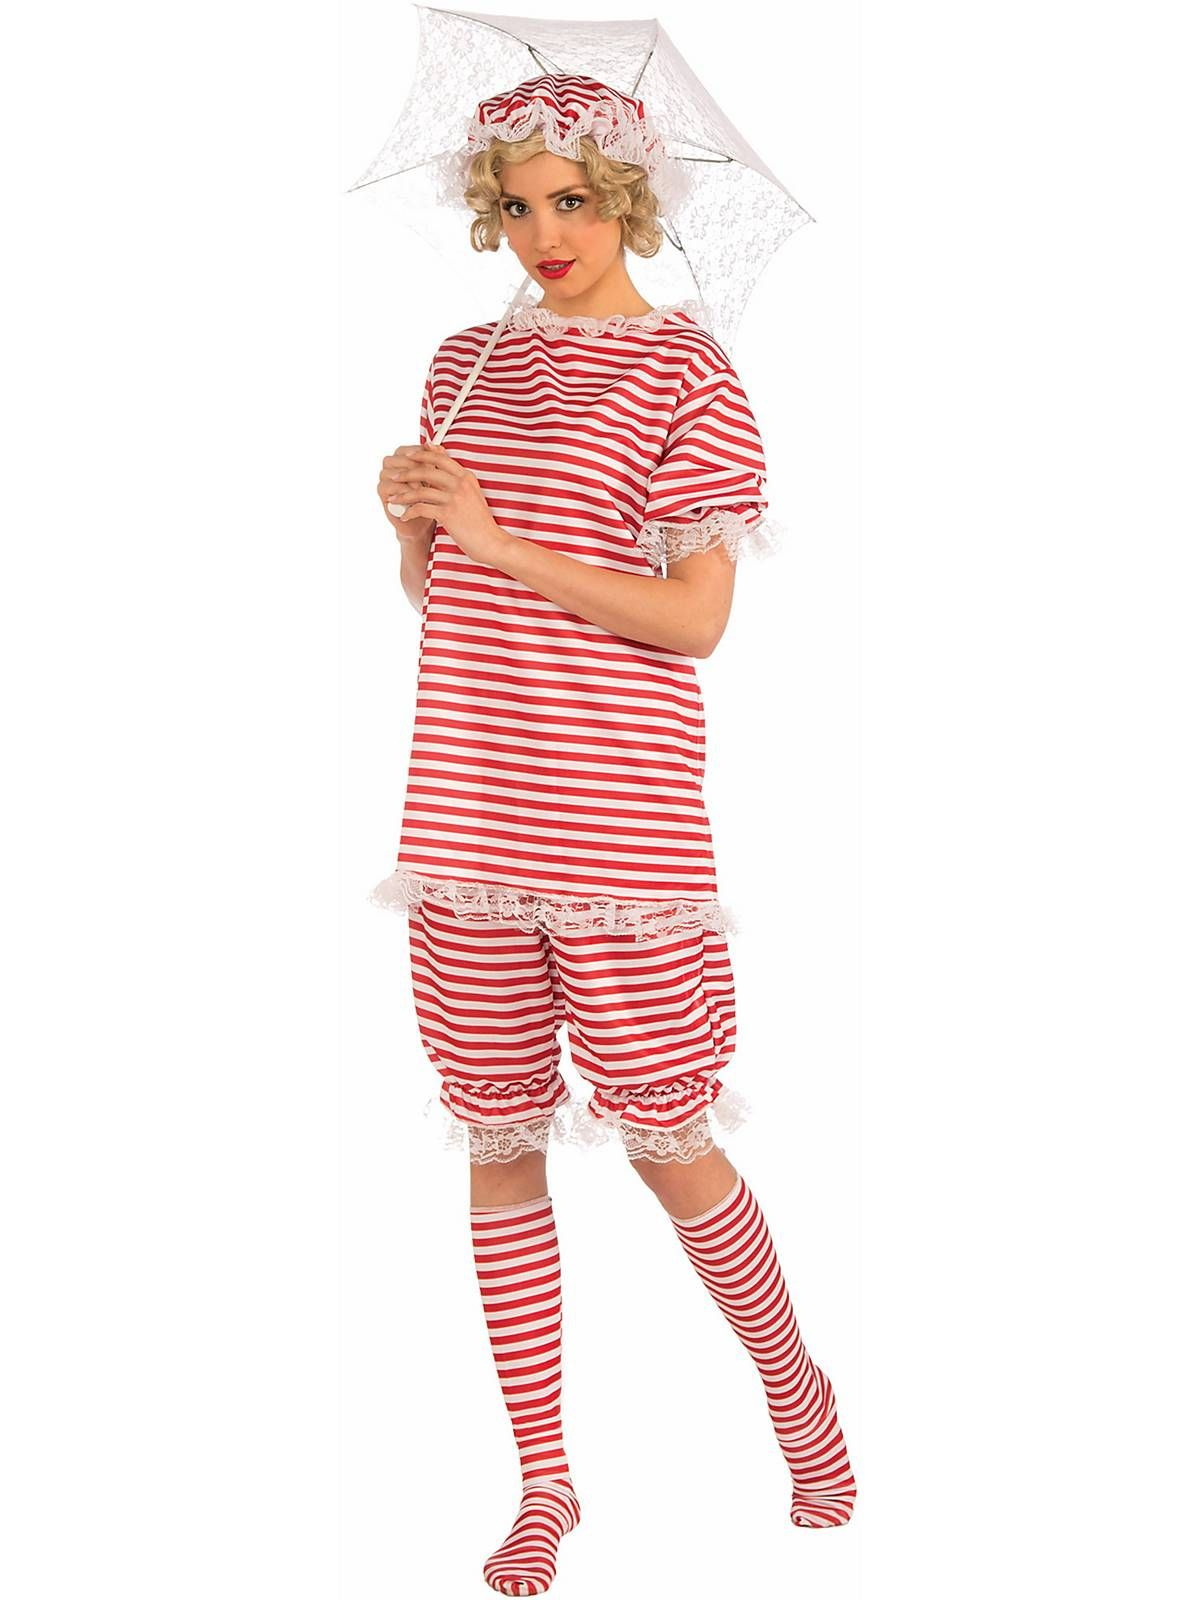 1920\'s Bathing Suit Adult Costume | Costumes, Halloween costumes and ...